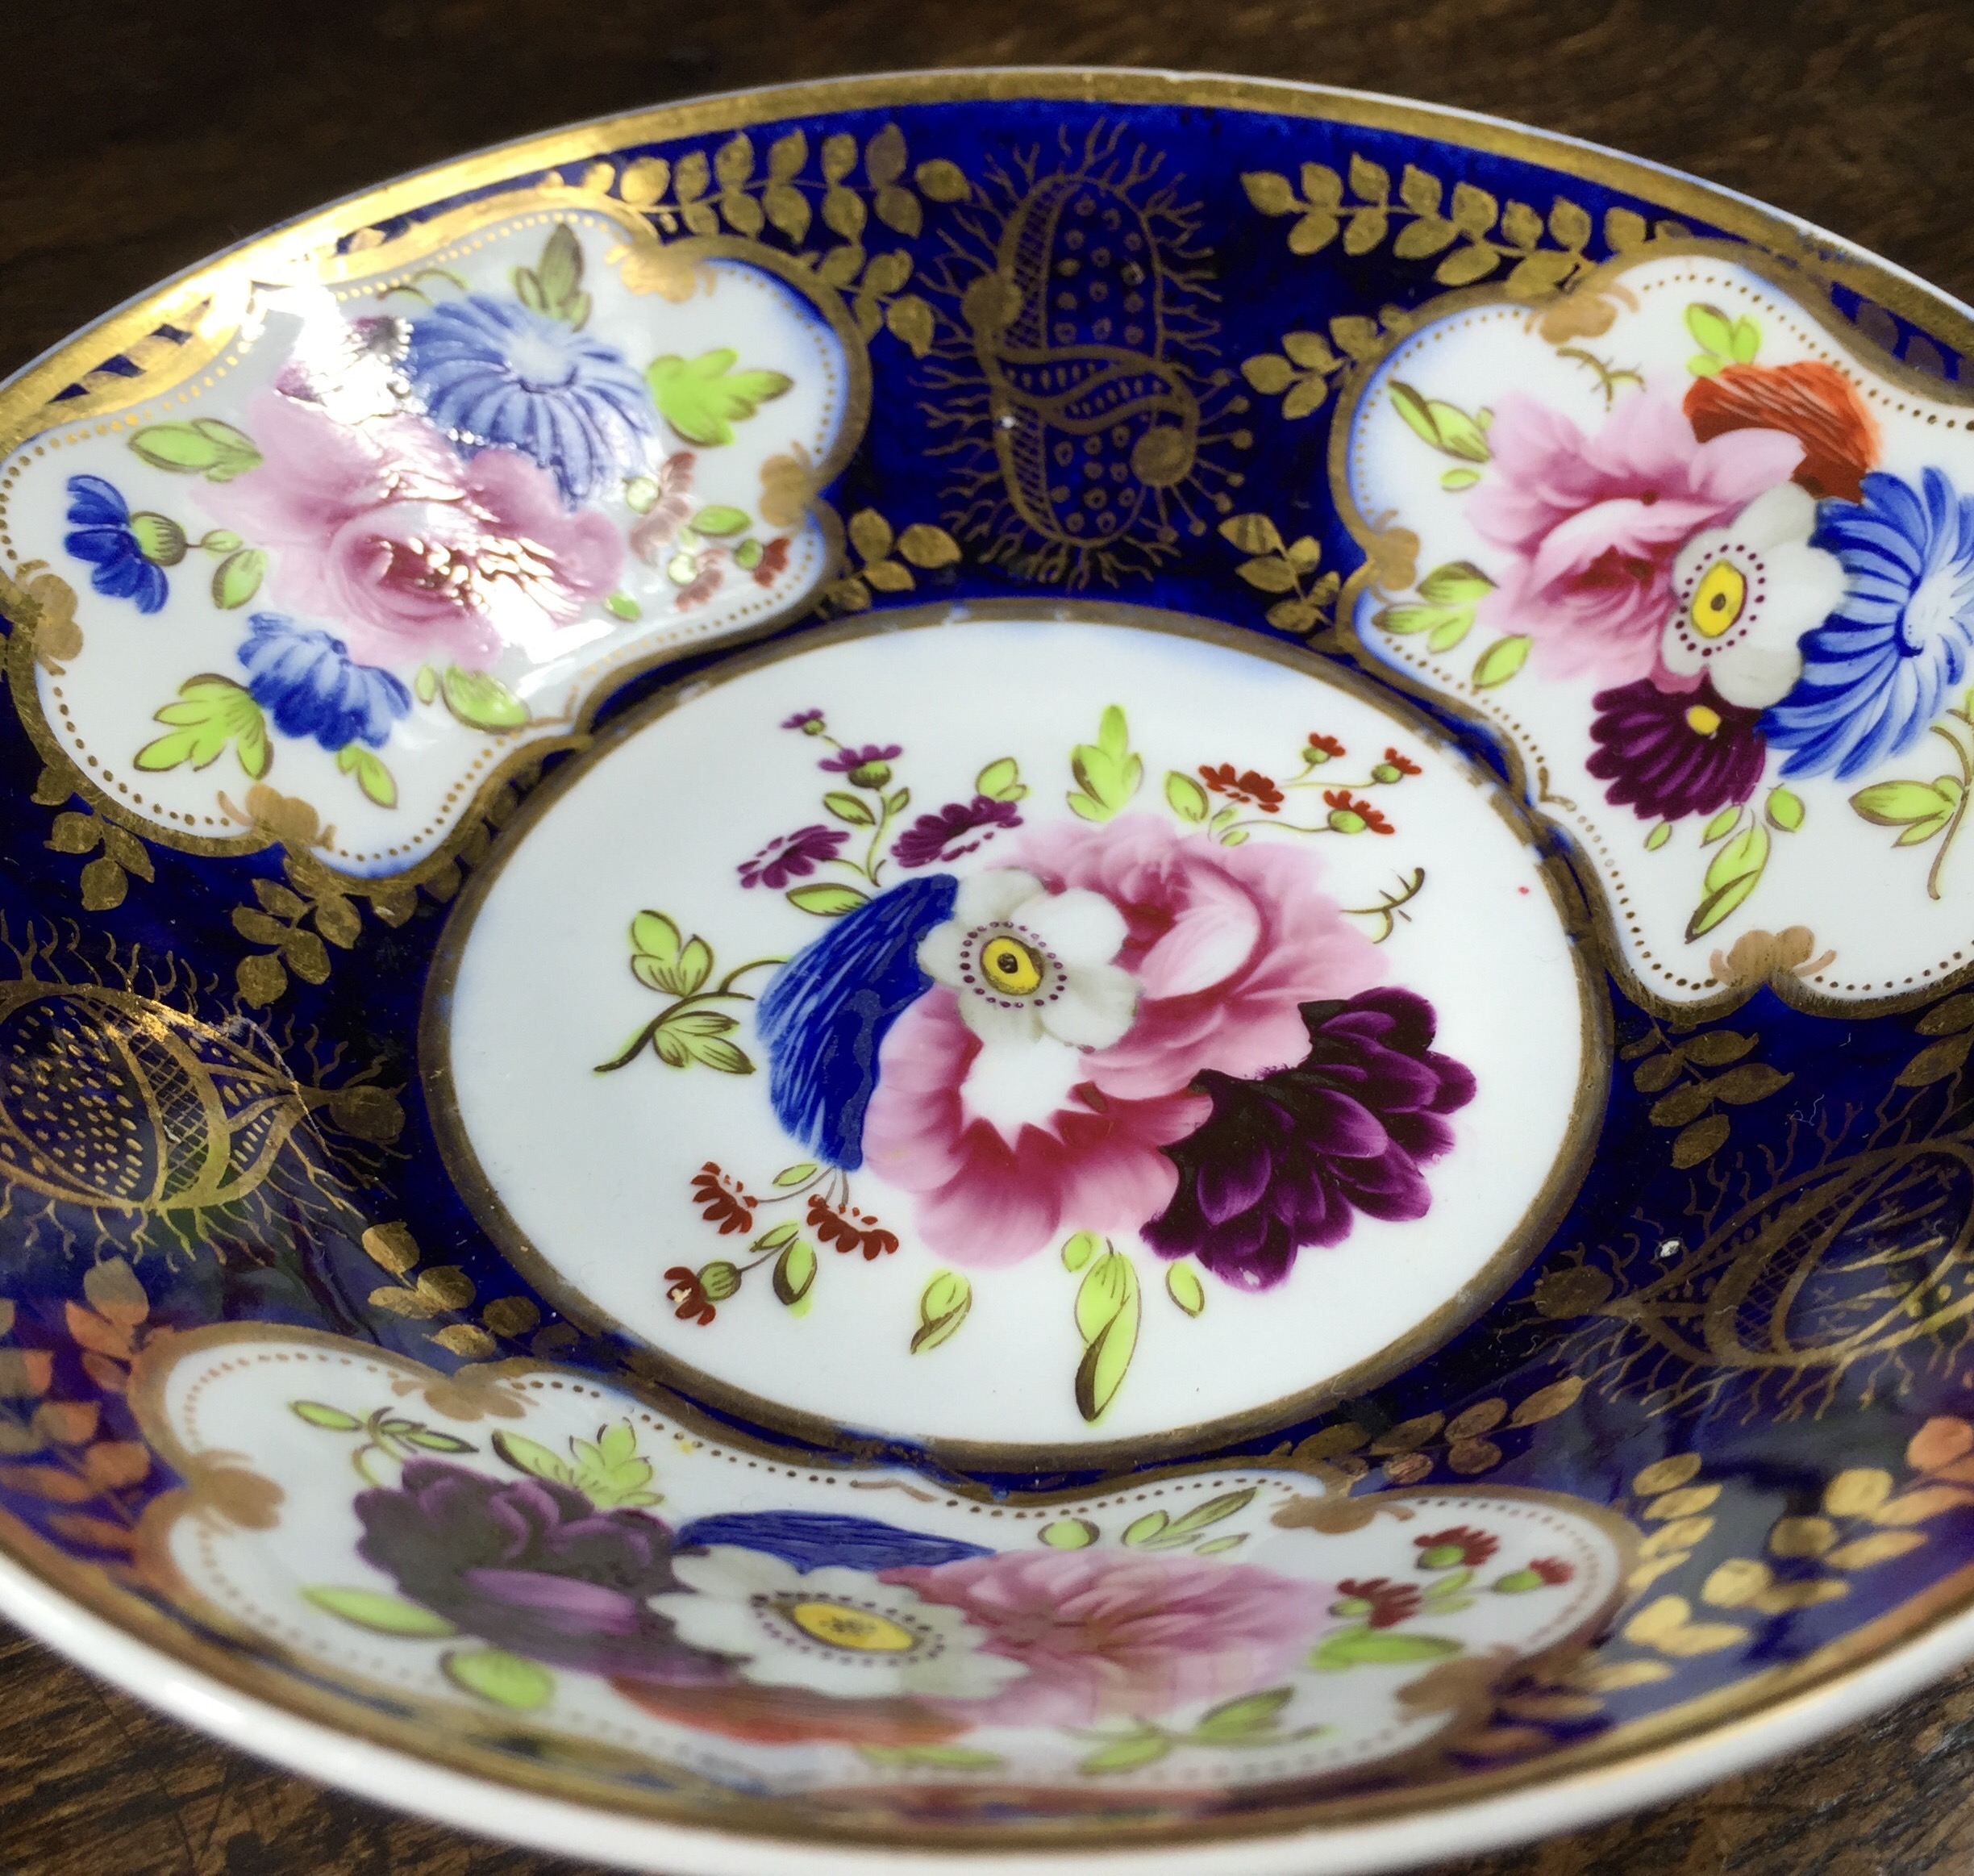 English bone china cup & saucer, probably Bourne, c. 1825-12556